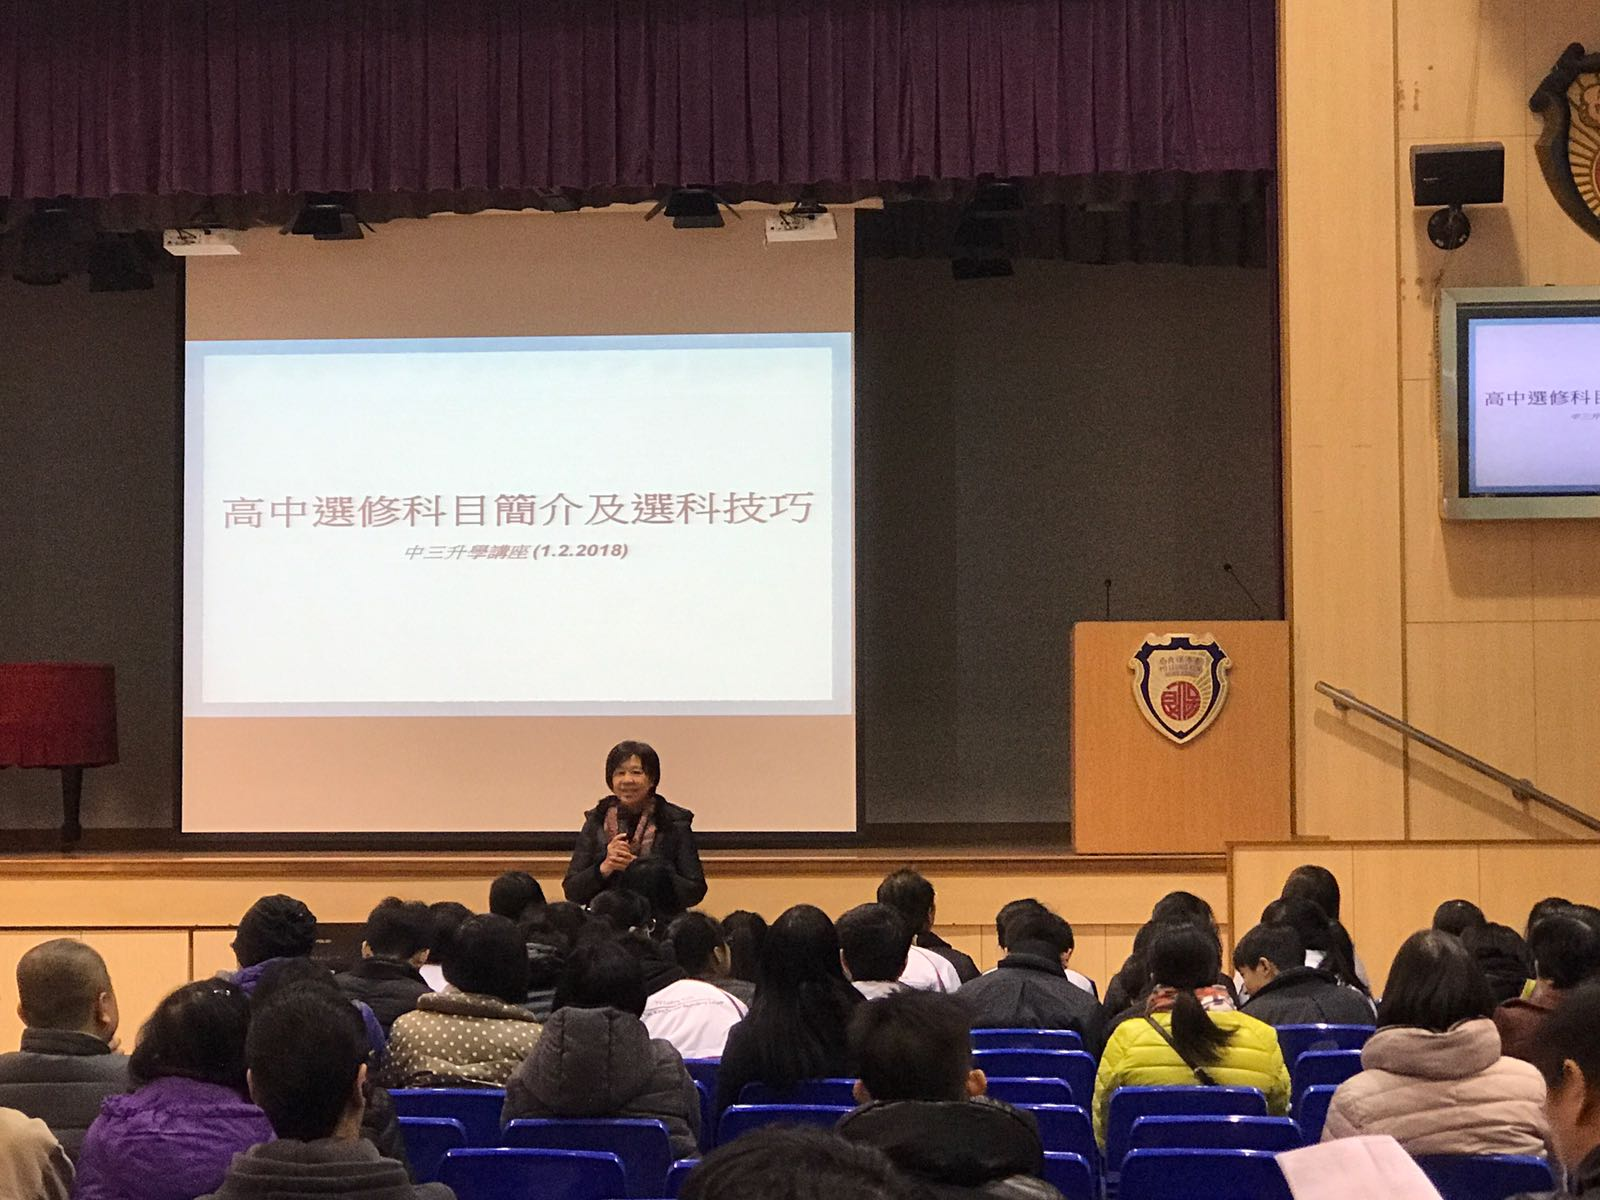 Ms Ng, the Vice-principal of SFC, was introducing the subject combination for the 2018-19 academic year.